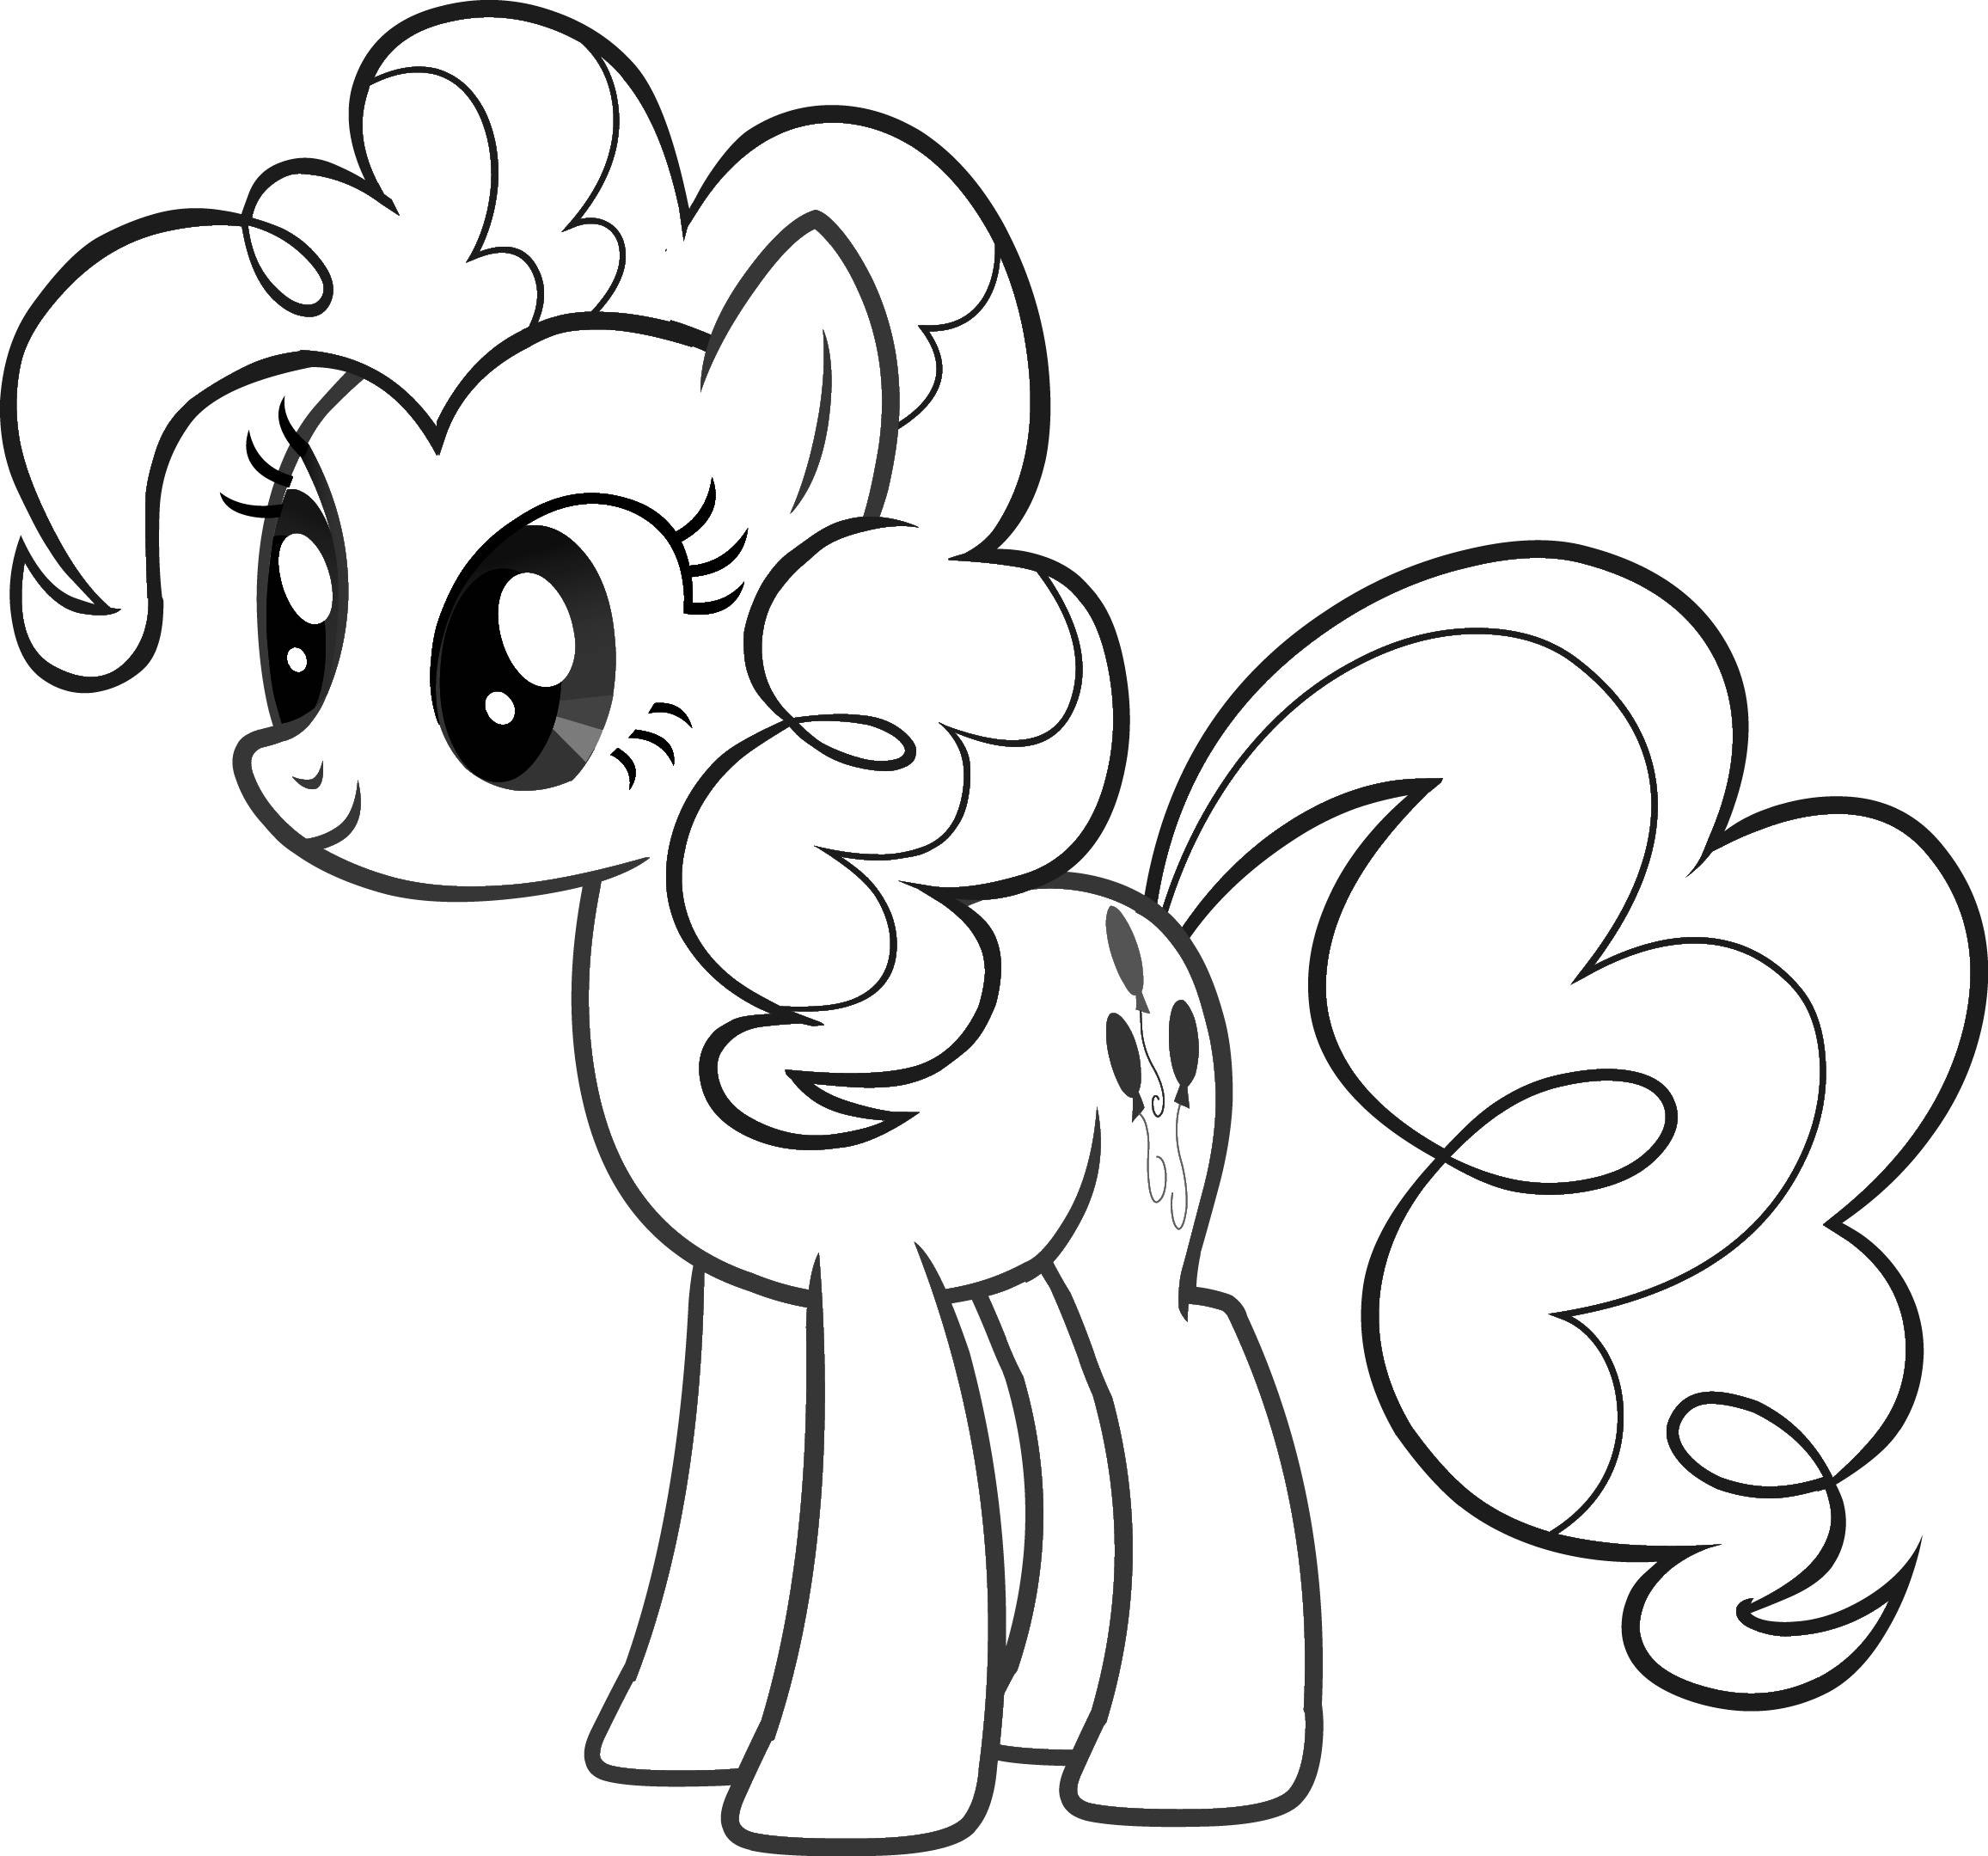 coloring pages of my little pony friendship is magic my little pony friendship is magic coloring pages pages magic coloring is of little my friendship pony